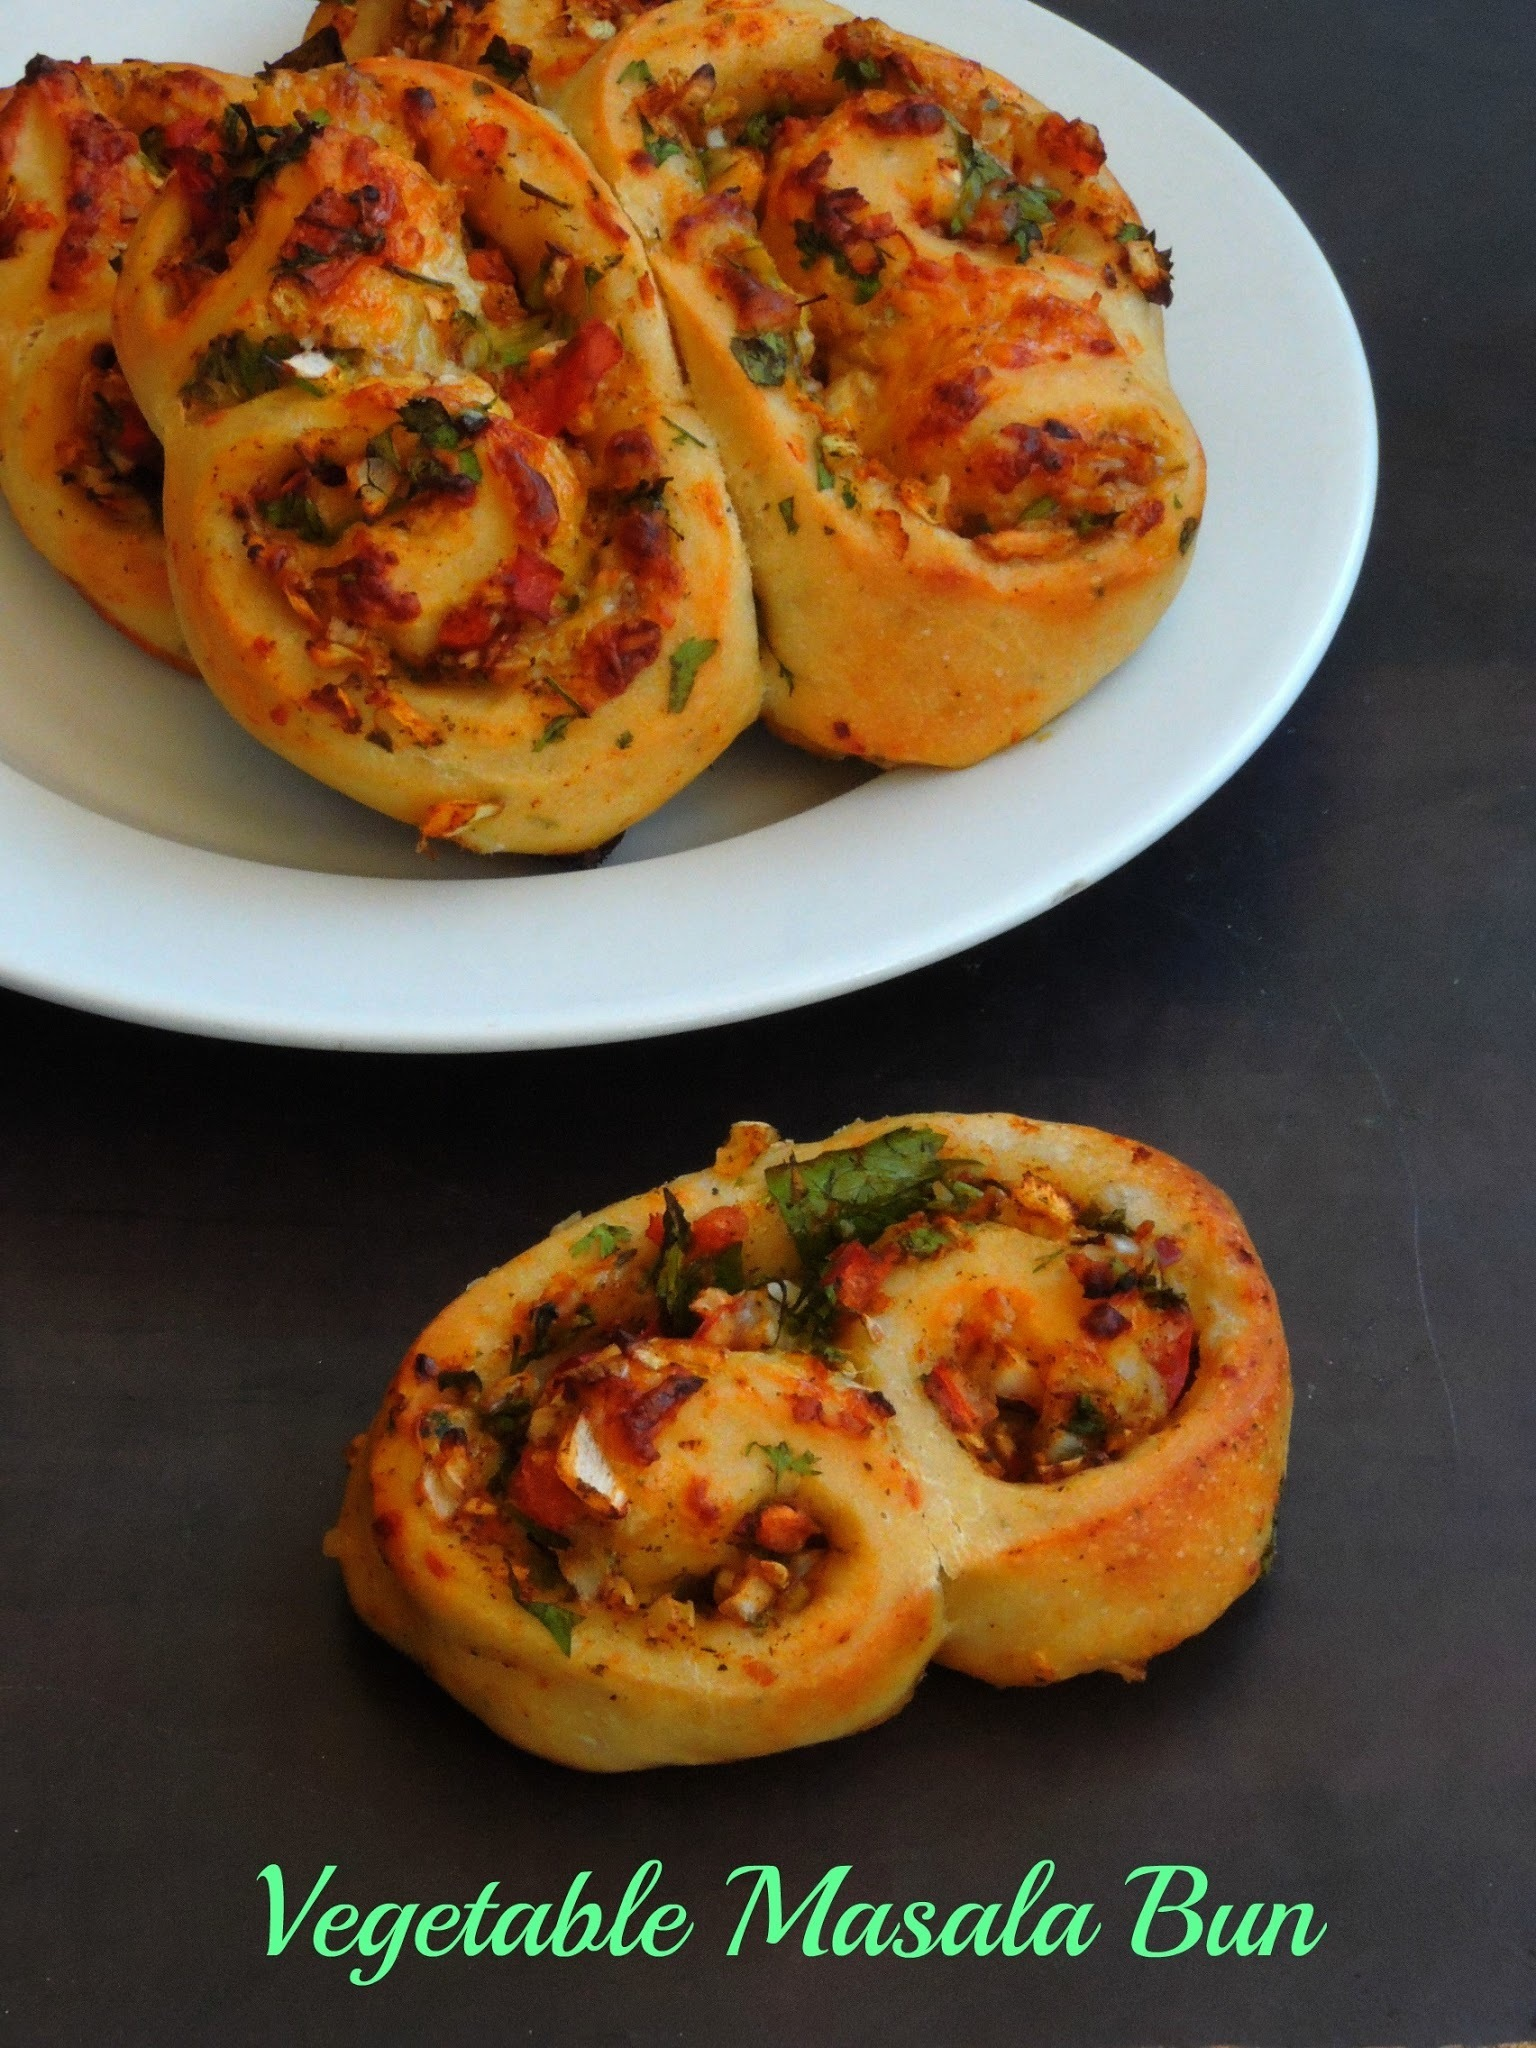 Vegetable Masala Buns/Raw Vegetable Stuffed Pizza Buns